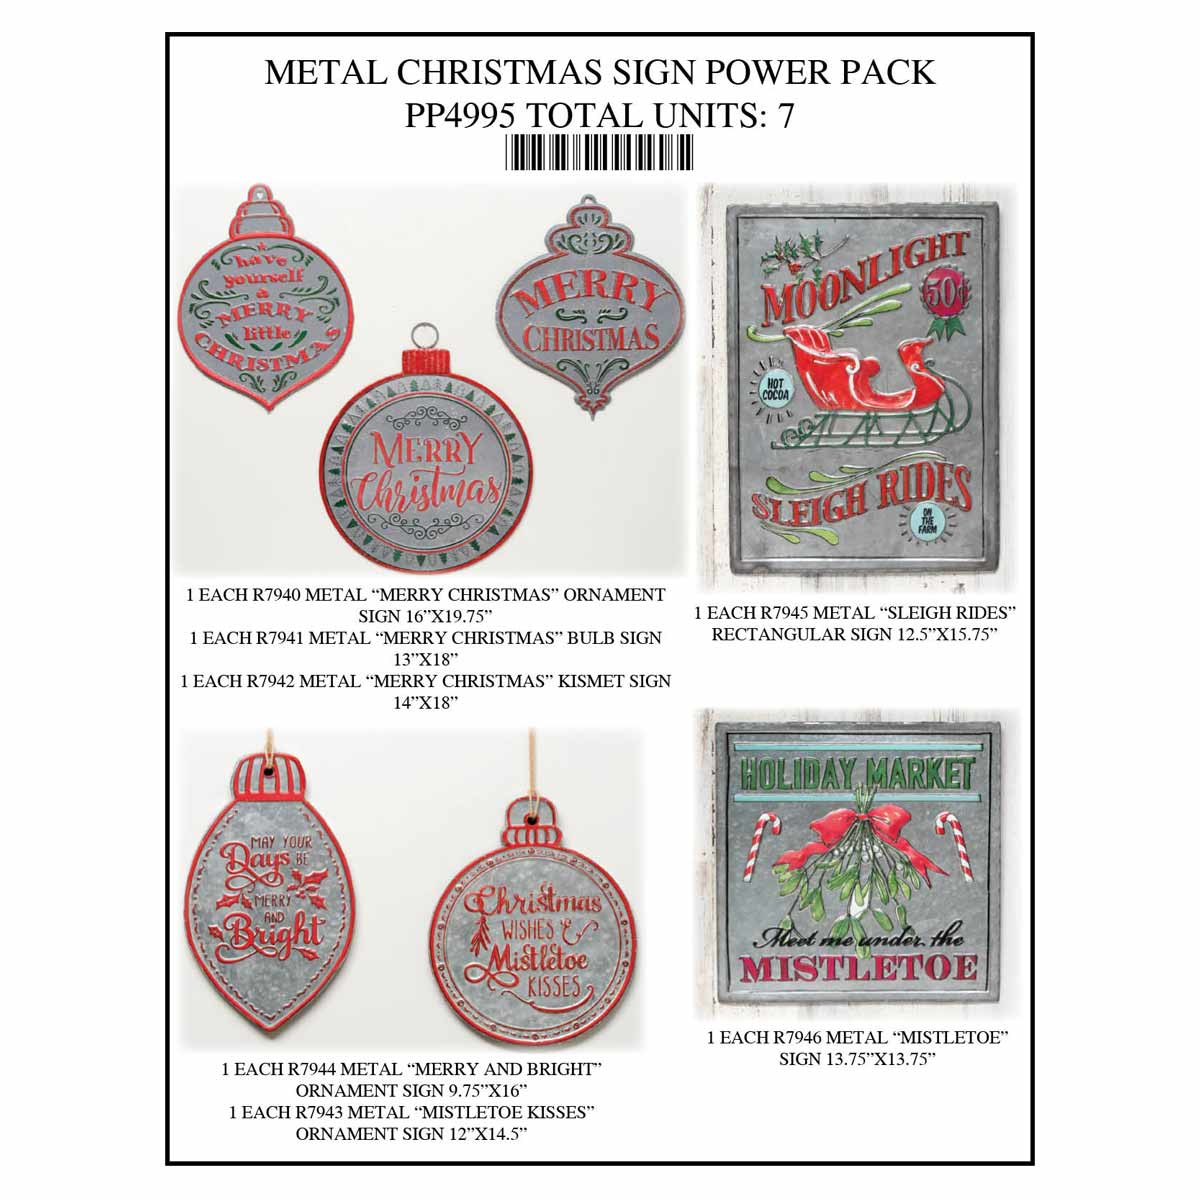 SIGN MERRY CHRISTMAS POWER PACK 7 UNITS